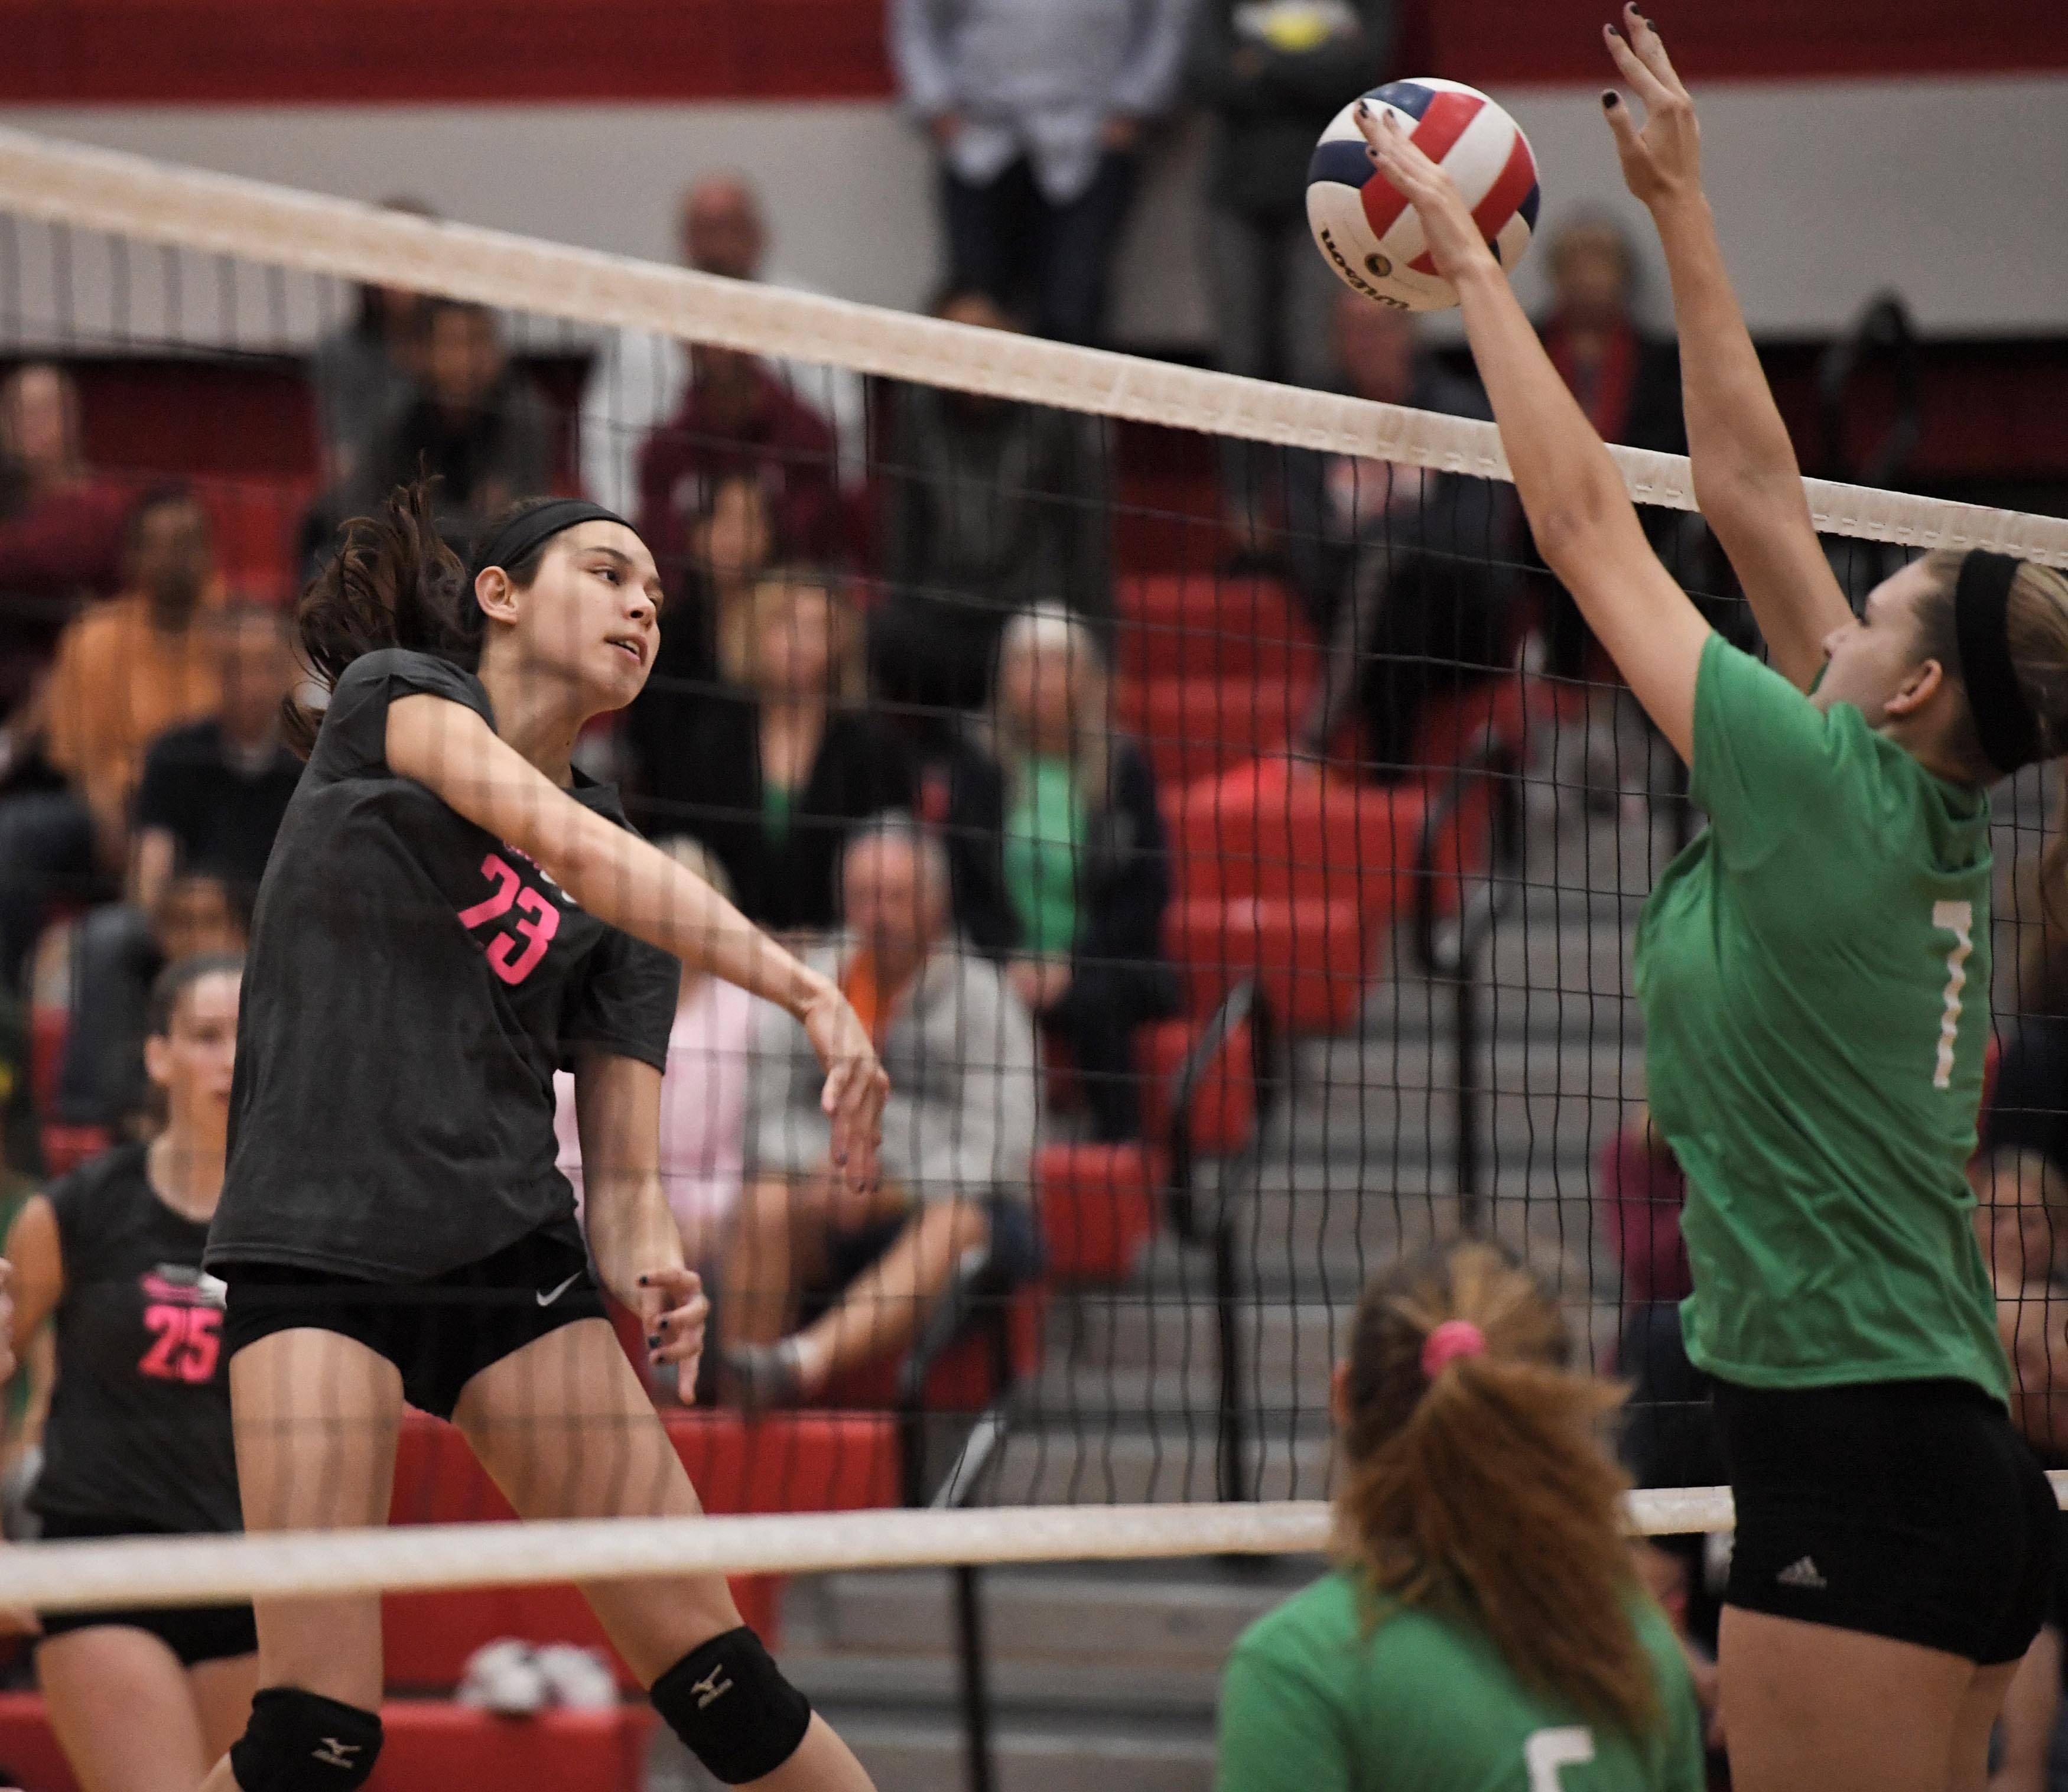 Palatine's Sarah Elischer hits into the defense of Fremd's Jules Tangney Thursday in a girls volleyball match at Palatine High School.